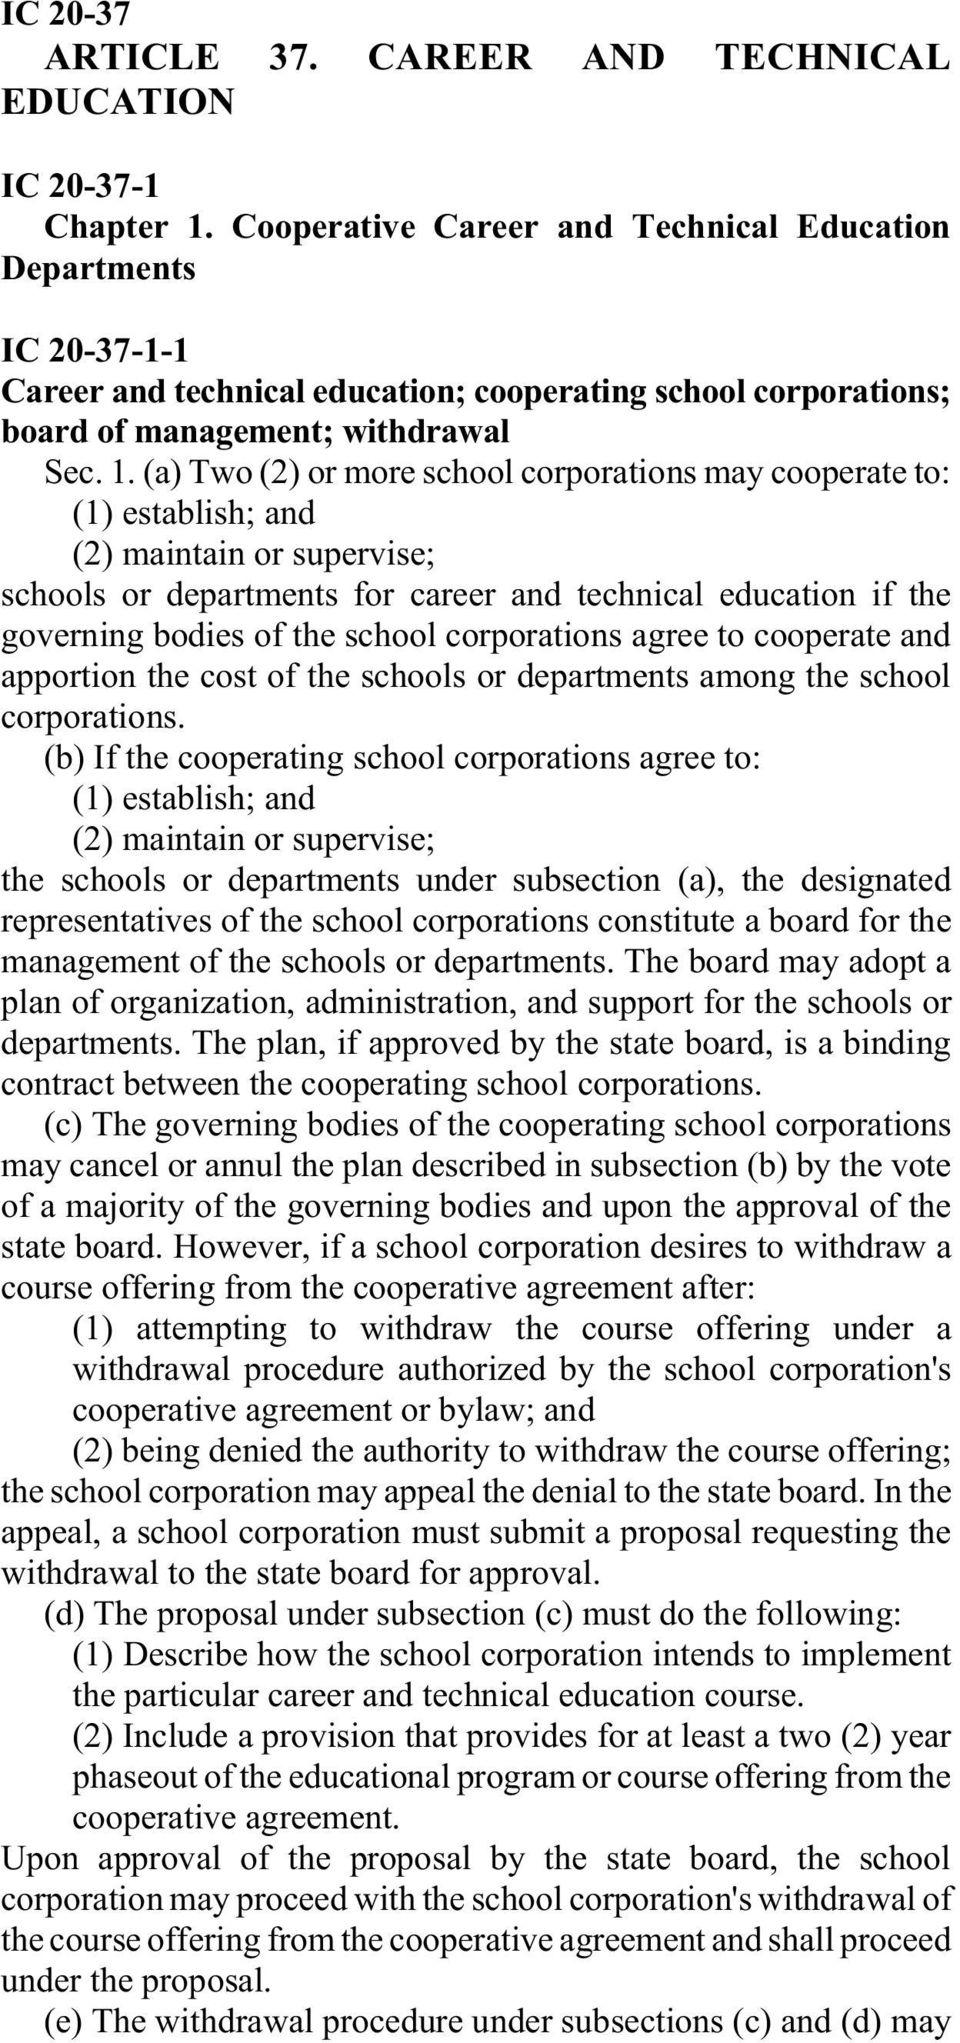 (a) Two (2) or more school corporations may cooperate to: (1) establish; and (2) maintain or supervise; schools or departments for career and technical education if the governing bodies of the school